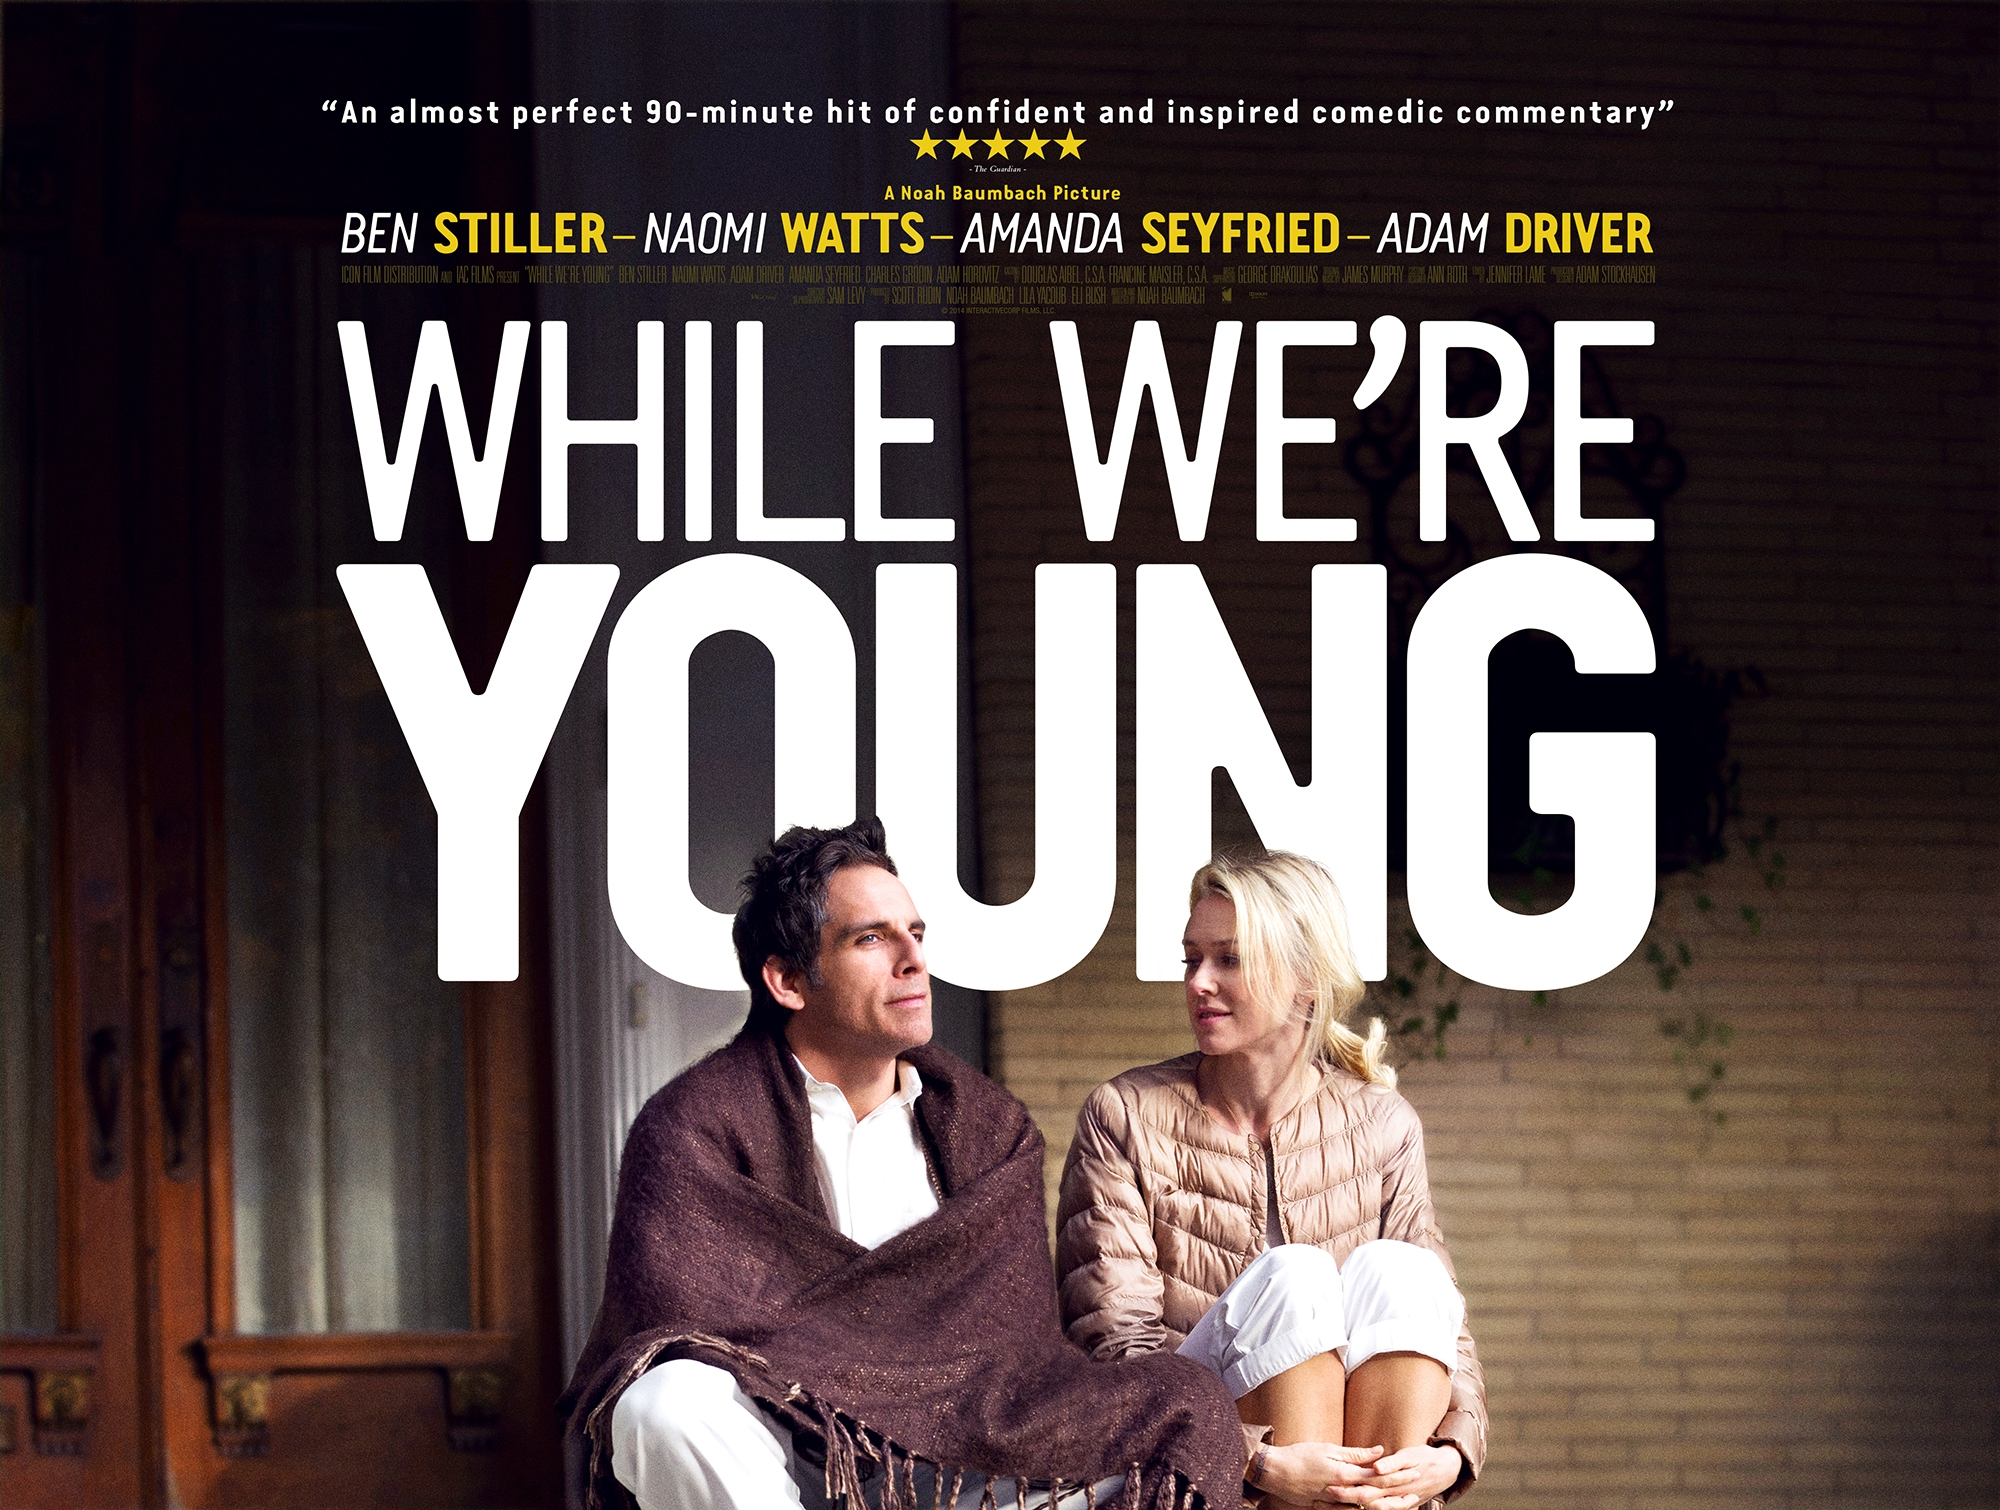 WhileWereYoung-poster1.jpg (2000×1510)